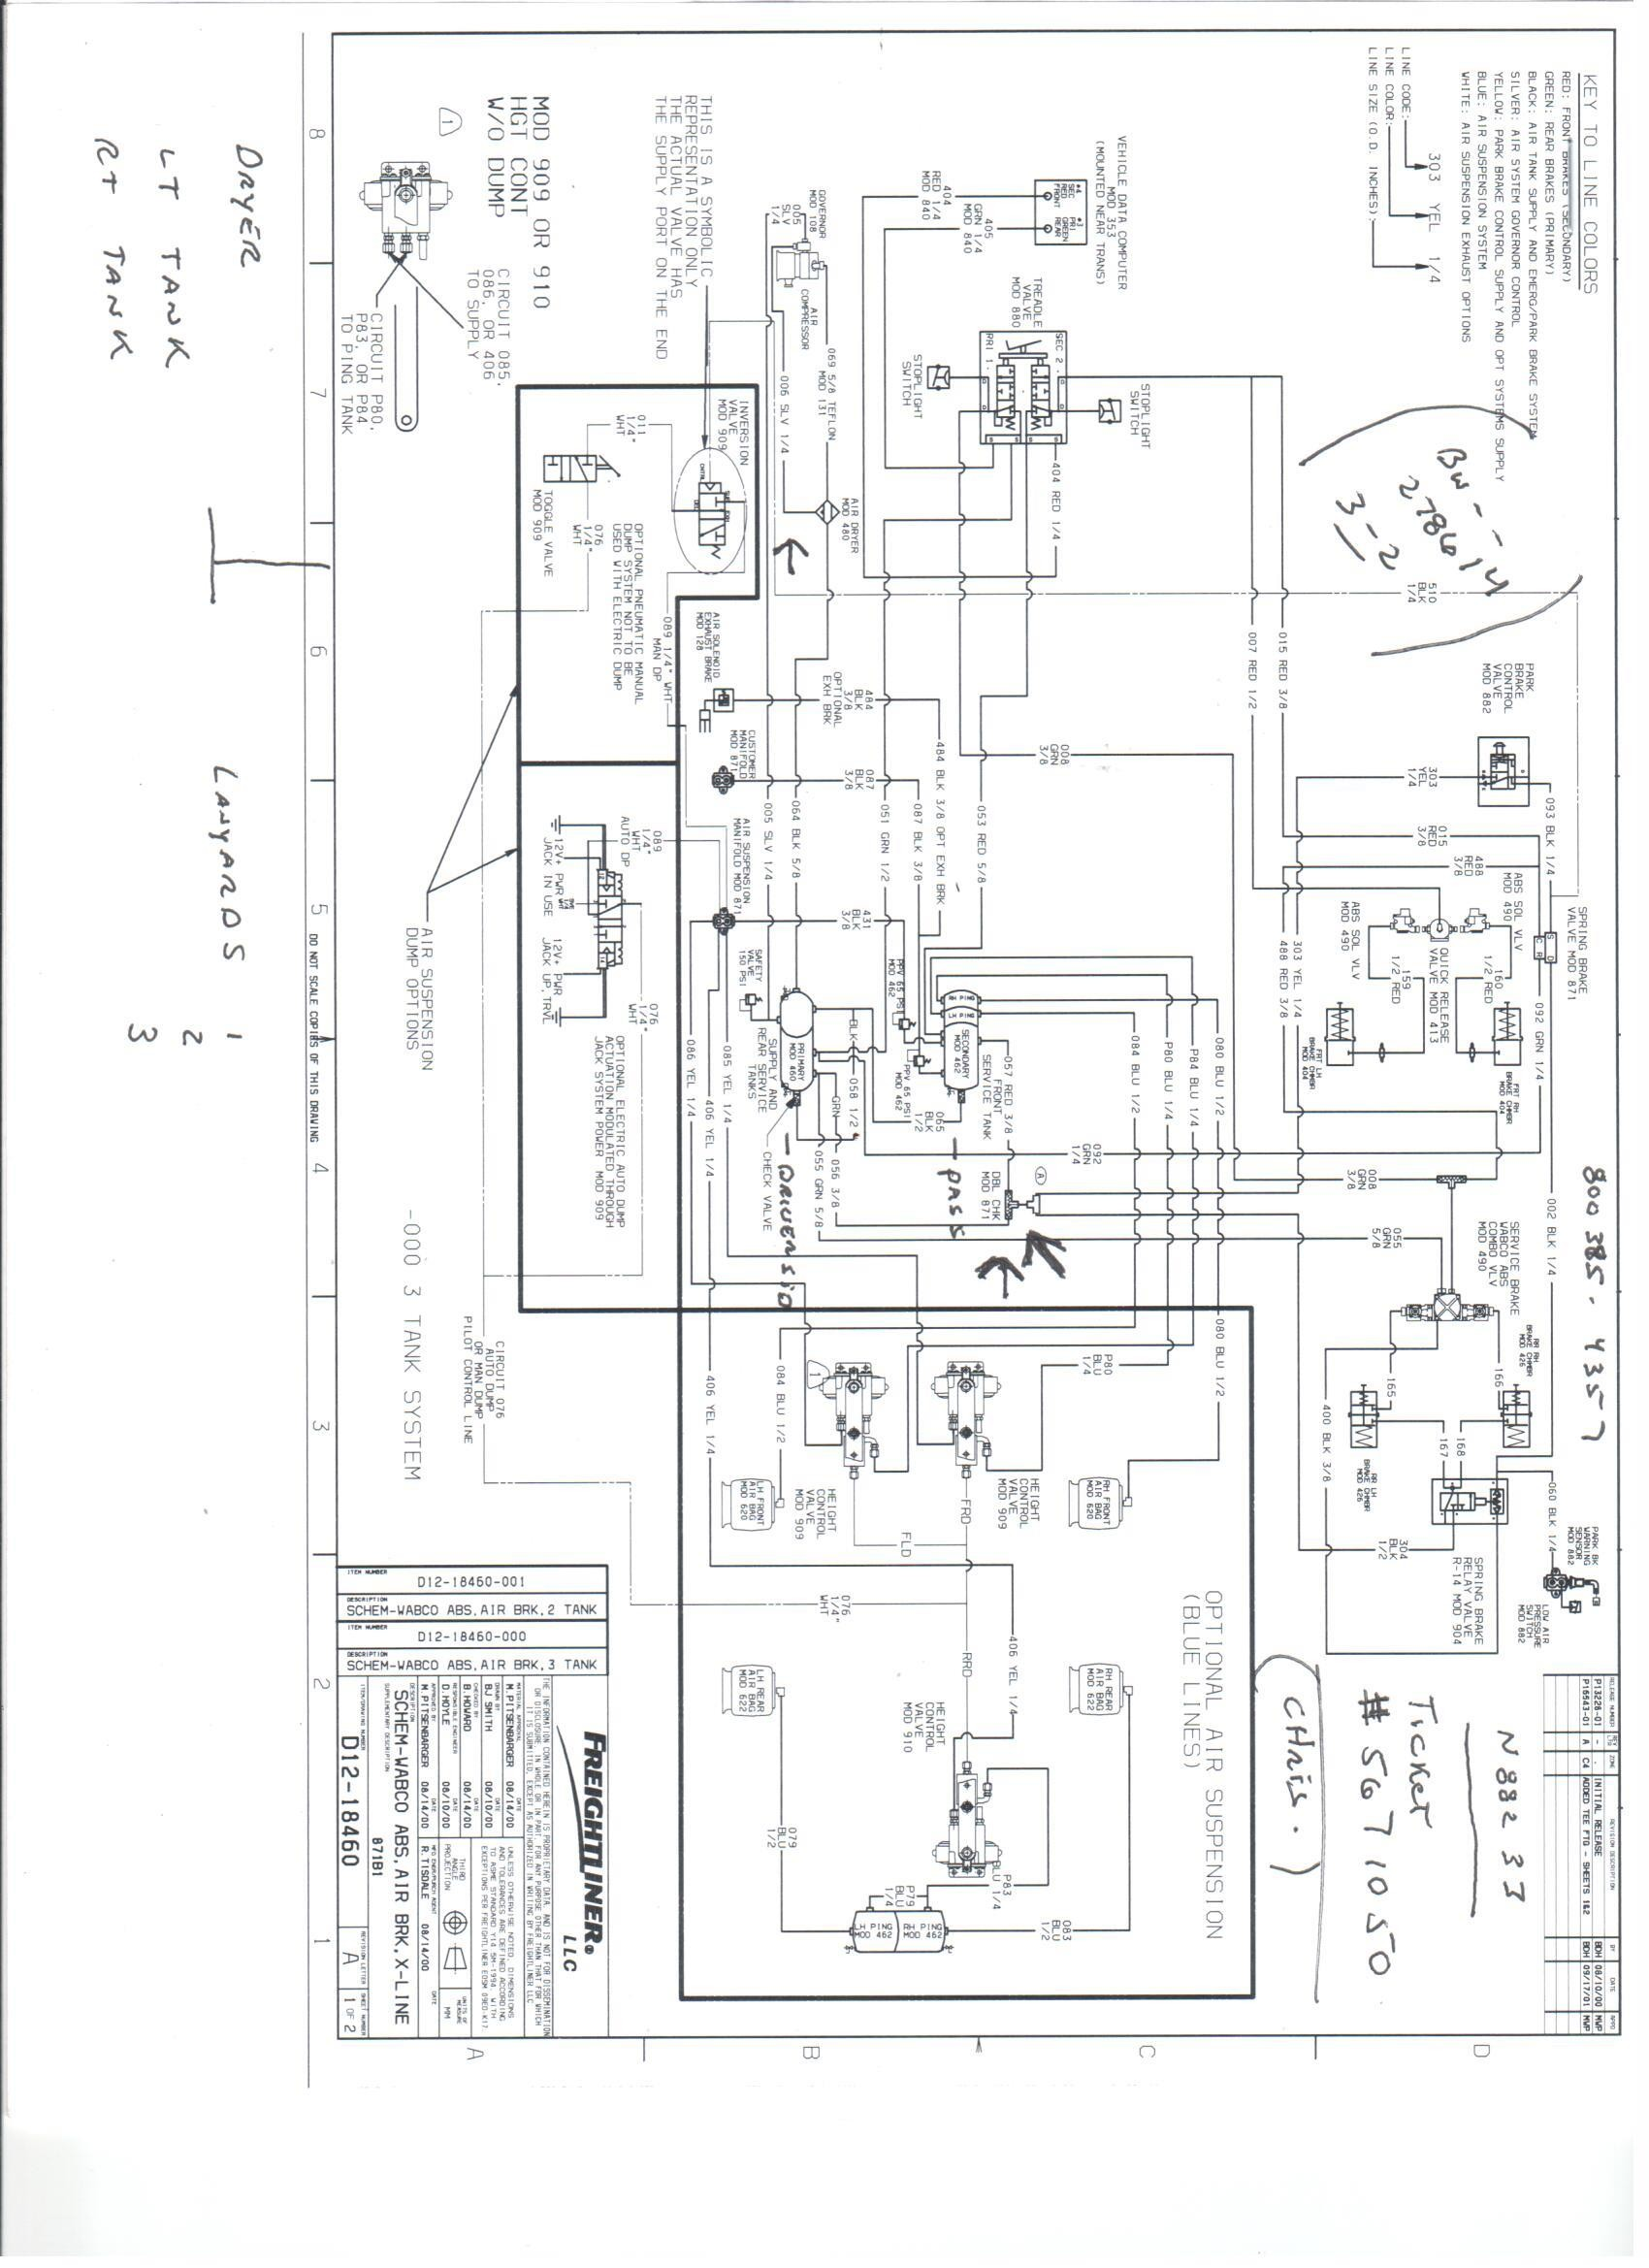 hight resolution of fleetwood revolution wiring diagrams wiring diagram2004 revolution wiring diagram wiring diagram fleetwood revolution